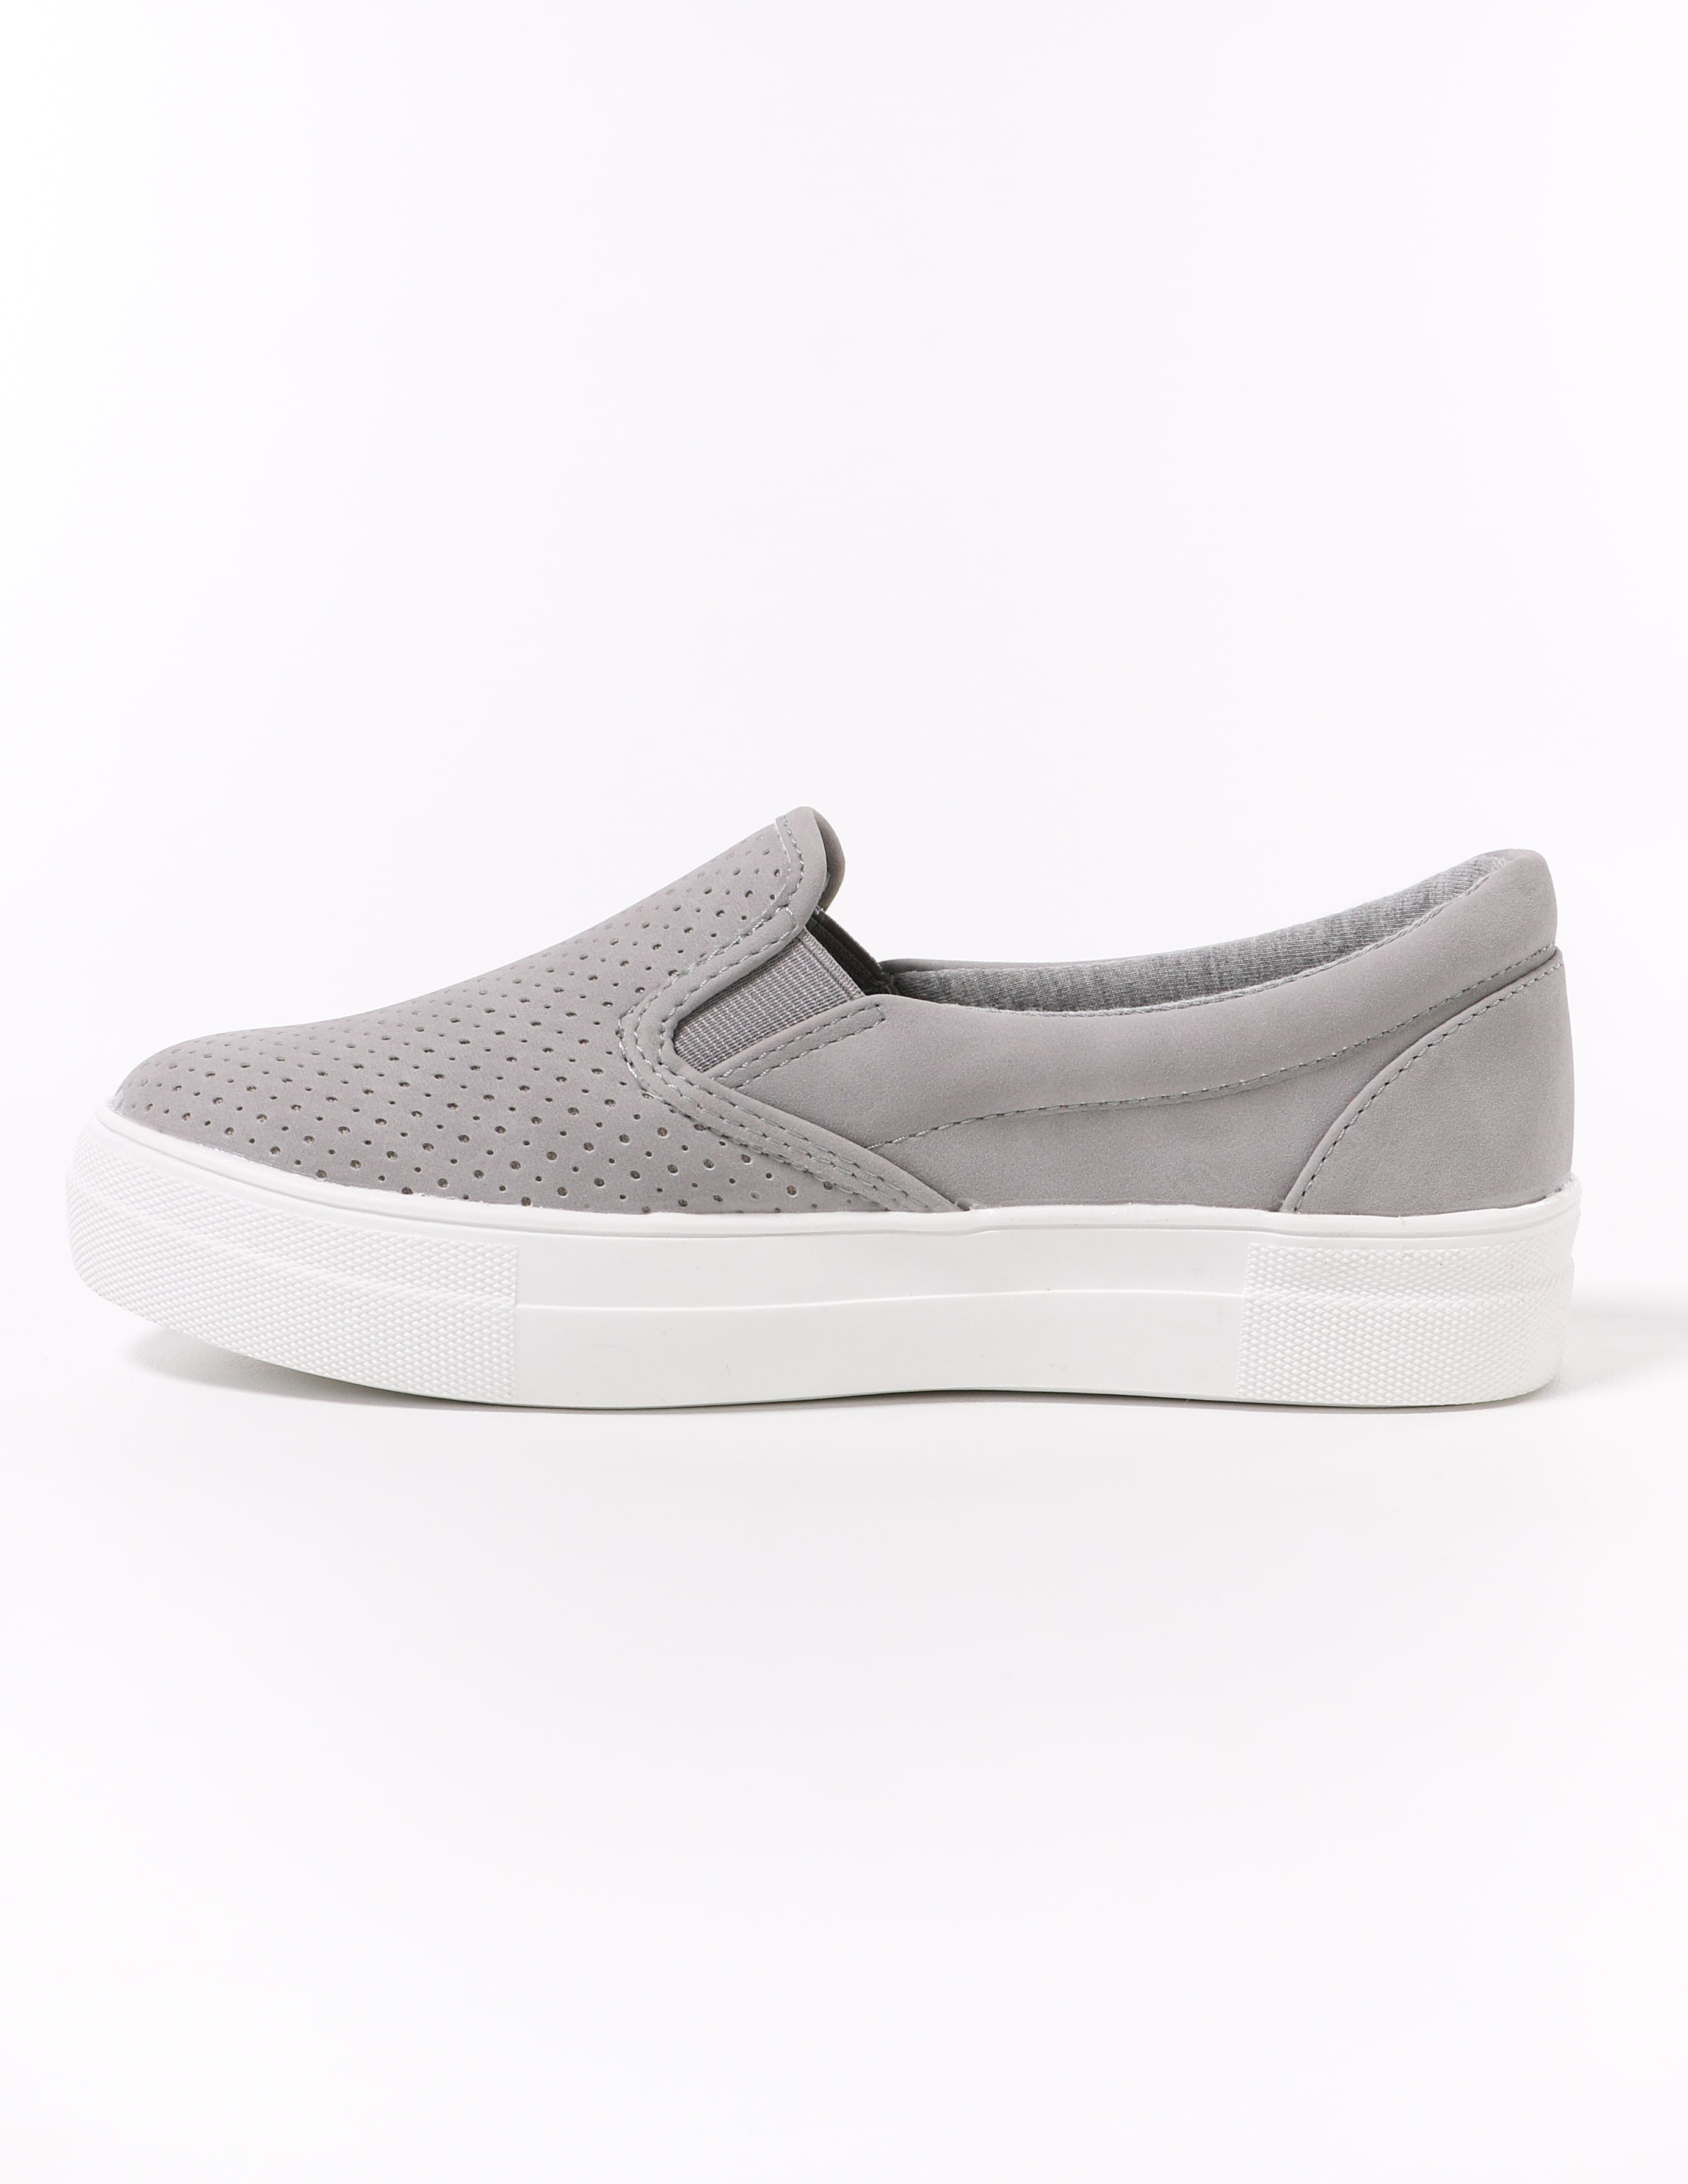 soda platform perf every penny grey sneaker with white sole